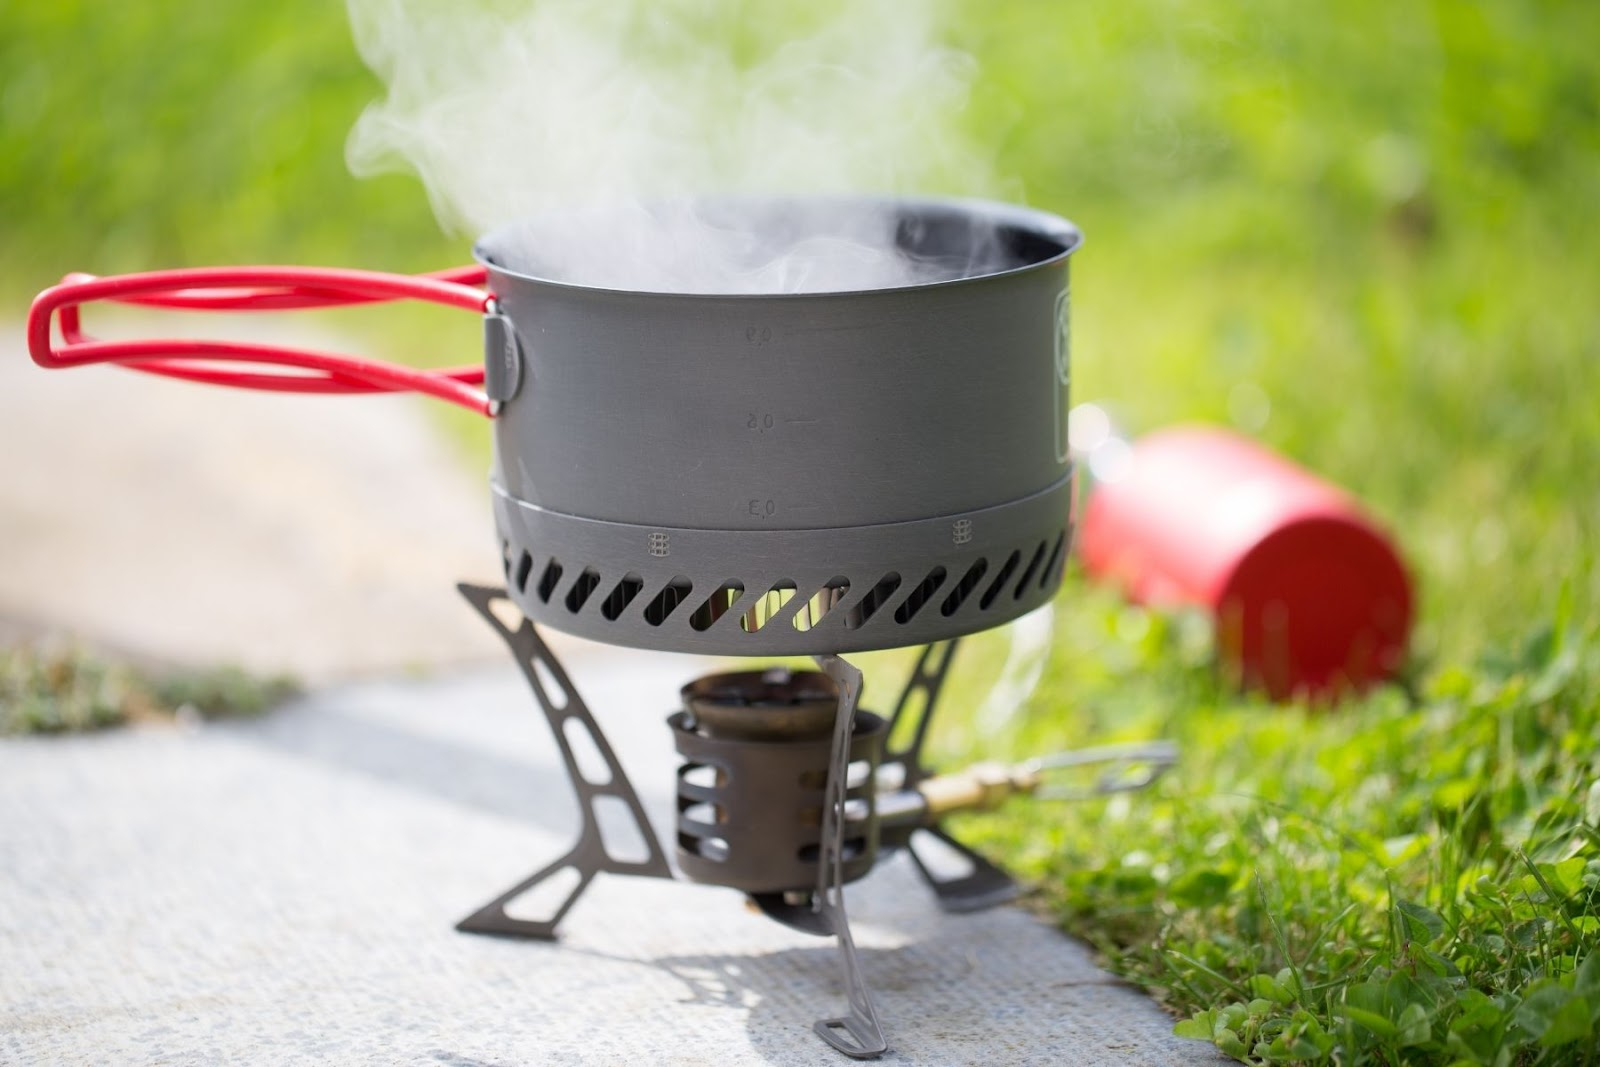 boiling water when backpacking